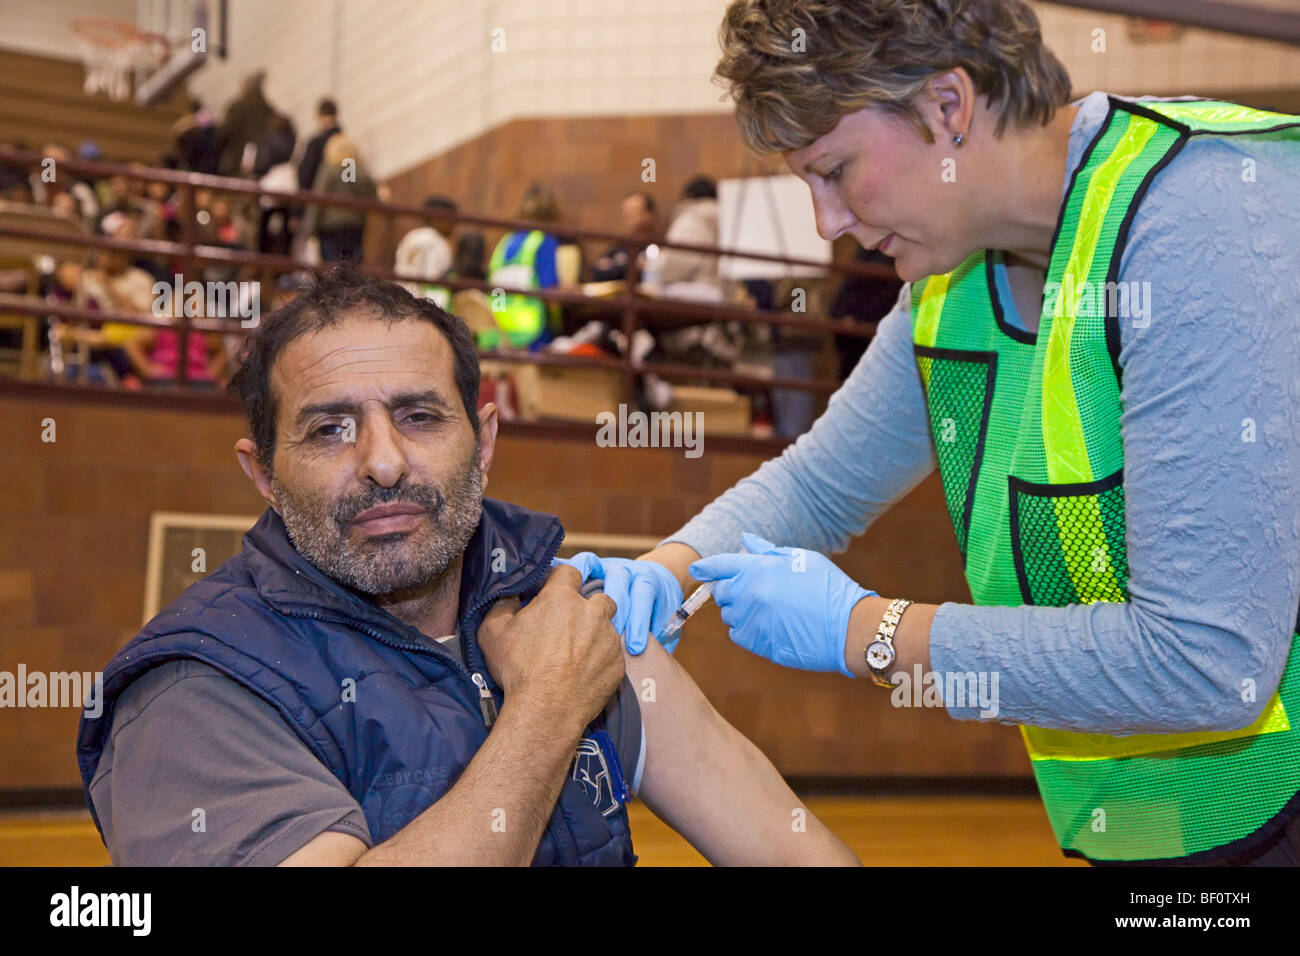 Hamtramck, Michigan - A health care worker vaccinates a man against the H1N1 swine flu. - Stock Image